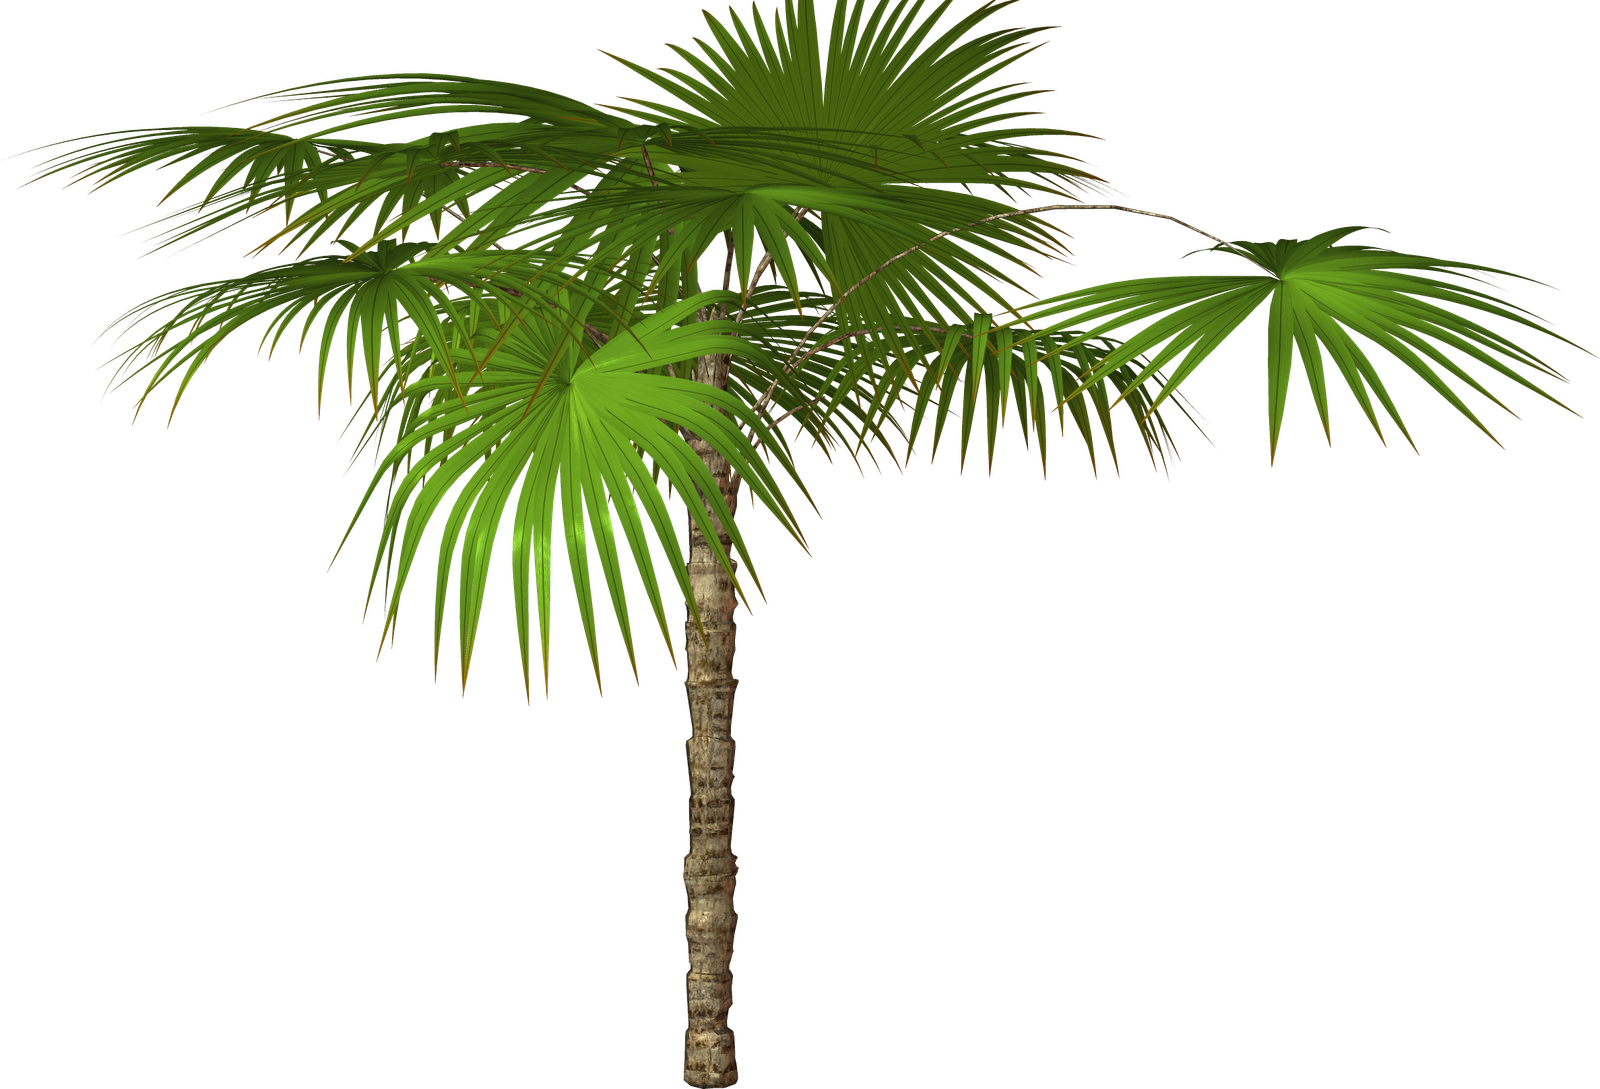 Palm tree and free png flower clipart: freehighresolutiongraphicsandclipart.blogspot.com.es/2011/12/palm...